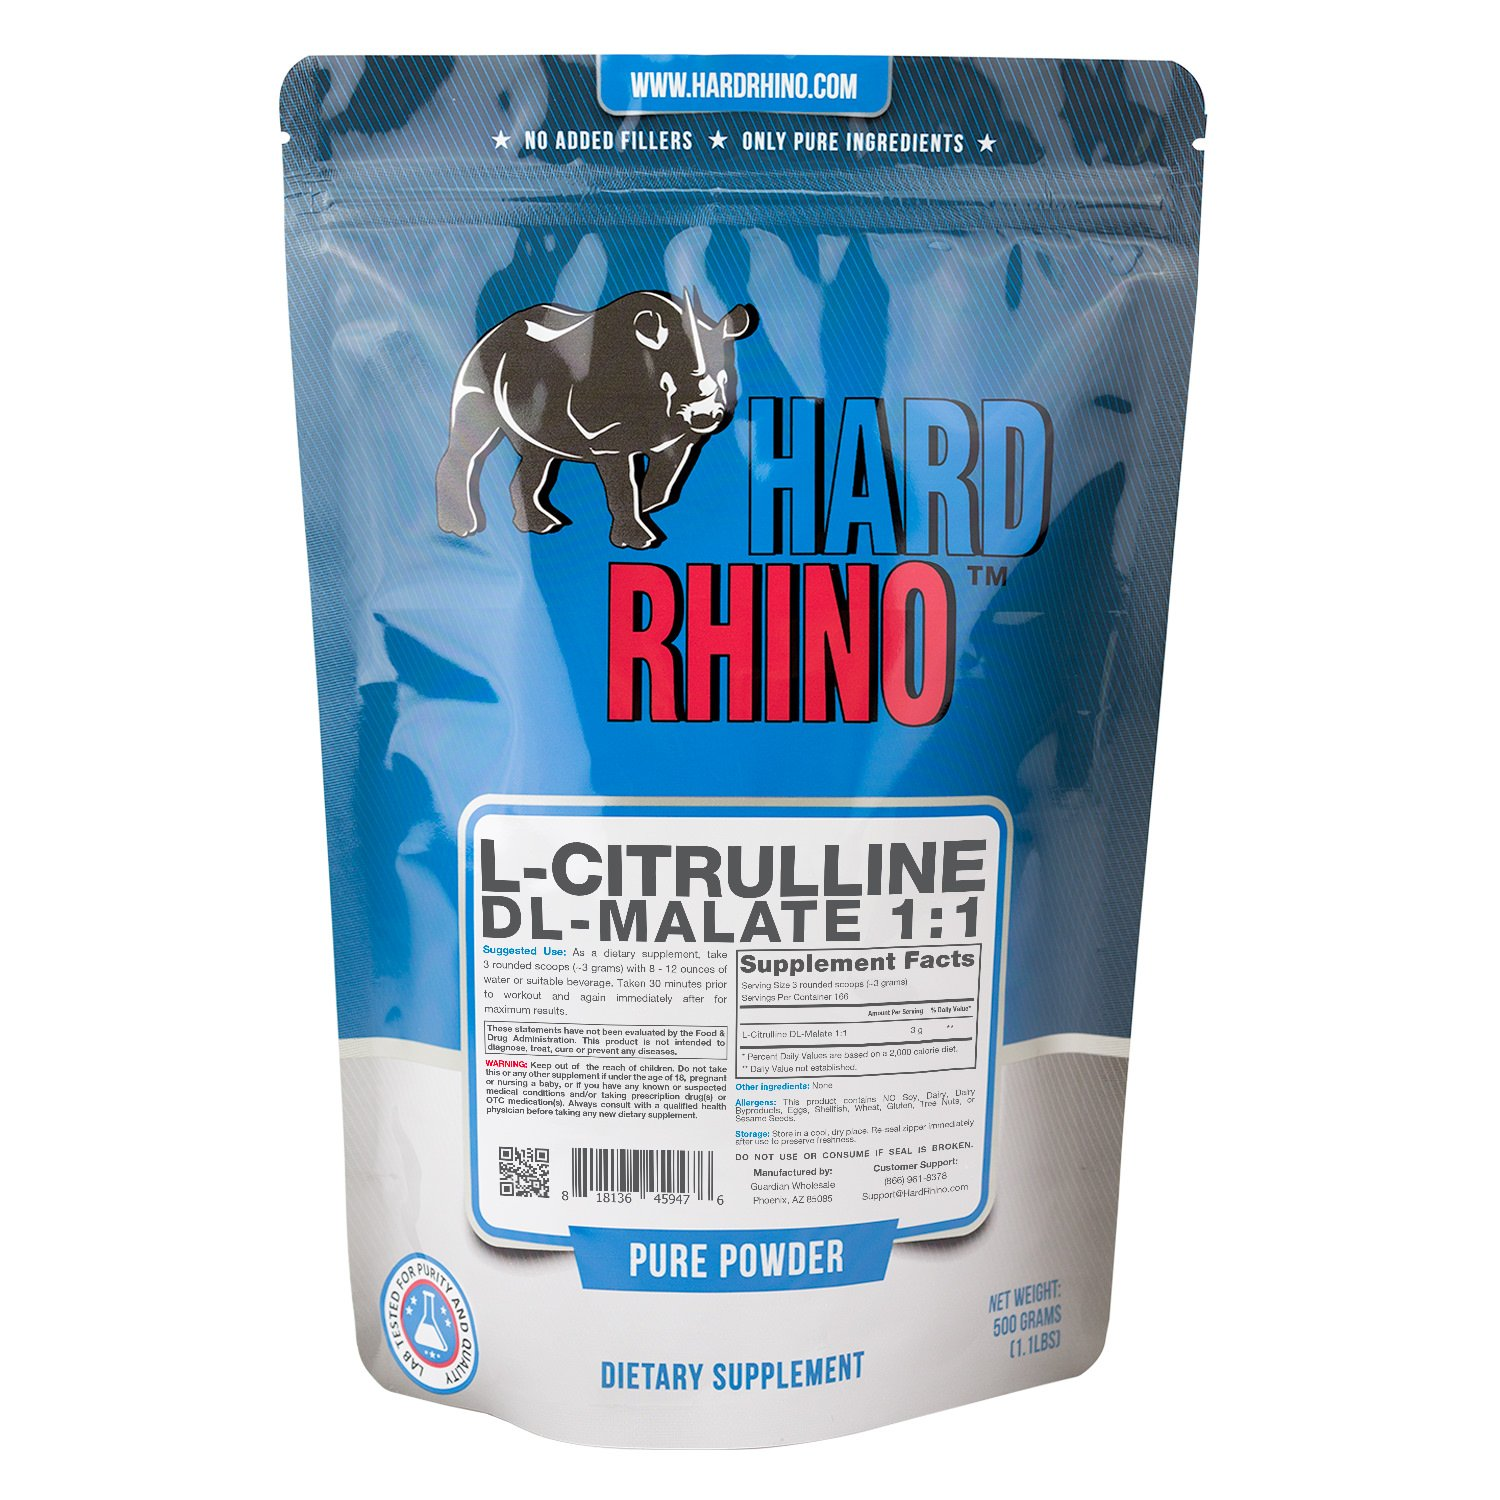 Hard Rhino L-Citrulline DL-Malate 1:1 Powder, 500 Grams (1.1 Lbs), Unflavored, Lab-Tested, Scoop Included